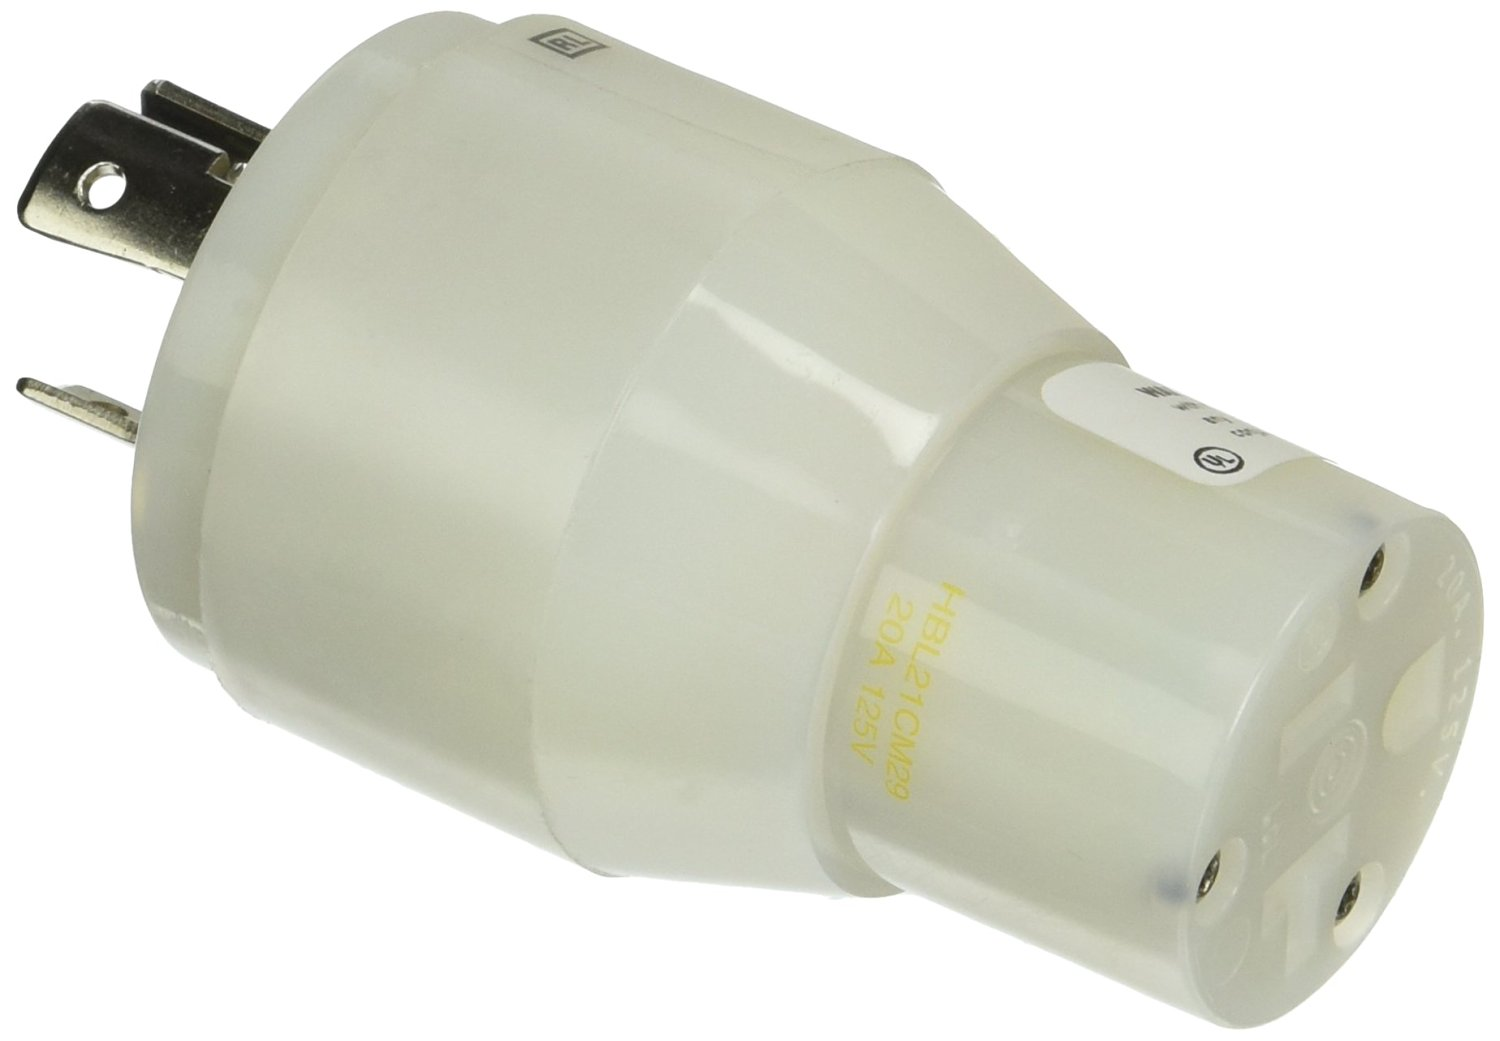 4W Twist-Lock Male end 125//250V 2P 3P 3W Twist-Lock Female end with 50A Hubbell Wiring Systems HBL61CM71 Molded Straight Adapter 125V 30A Yellow